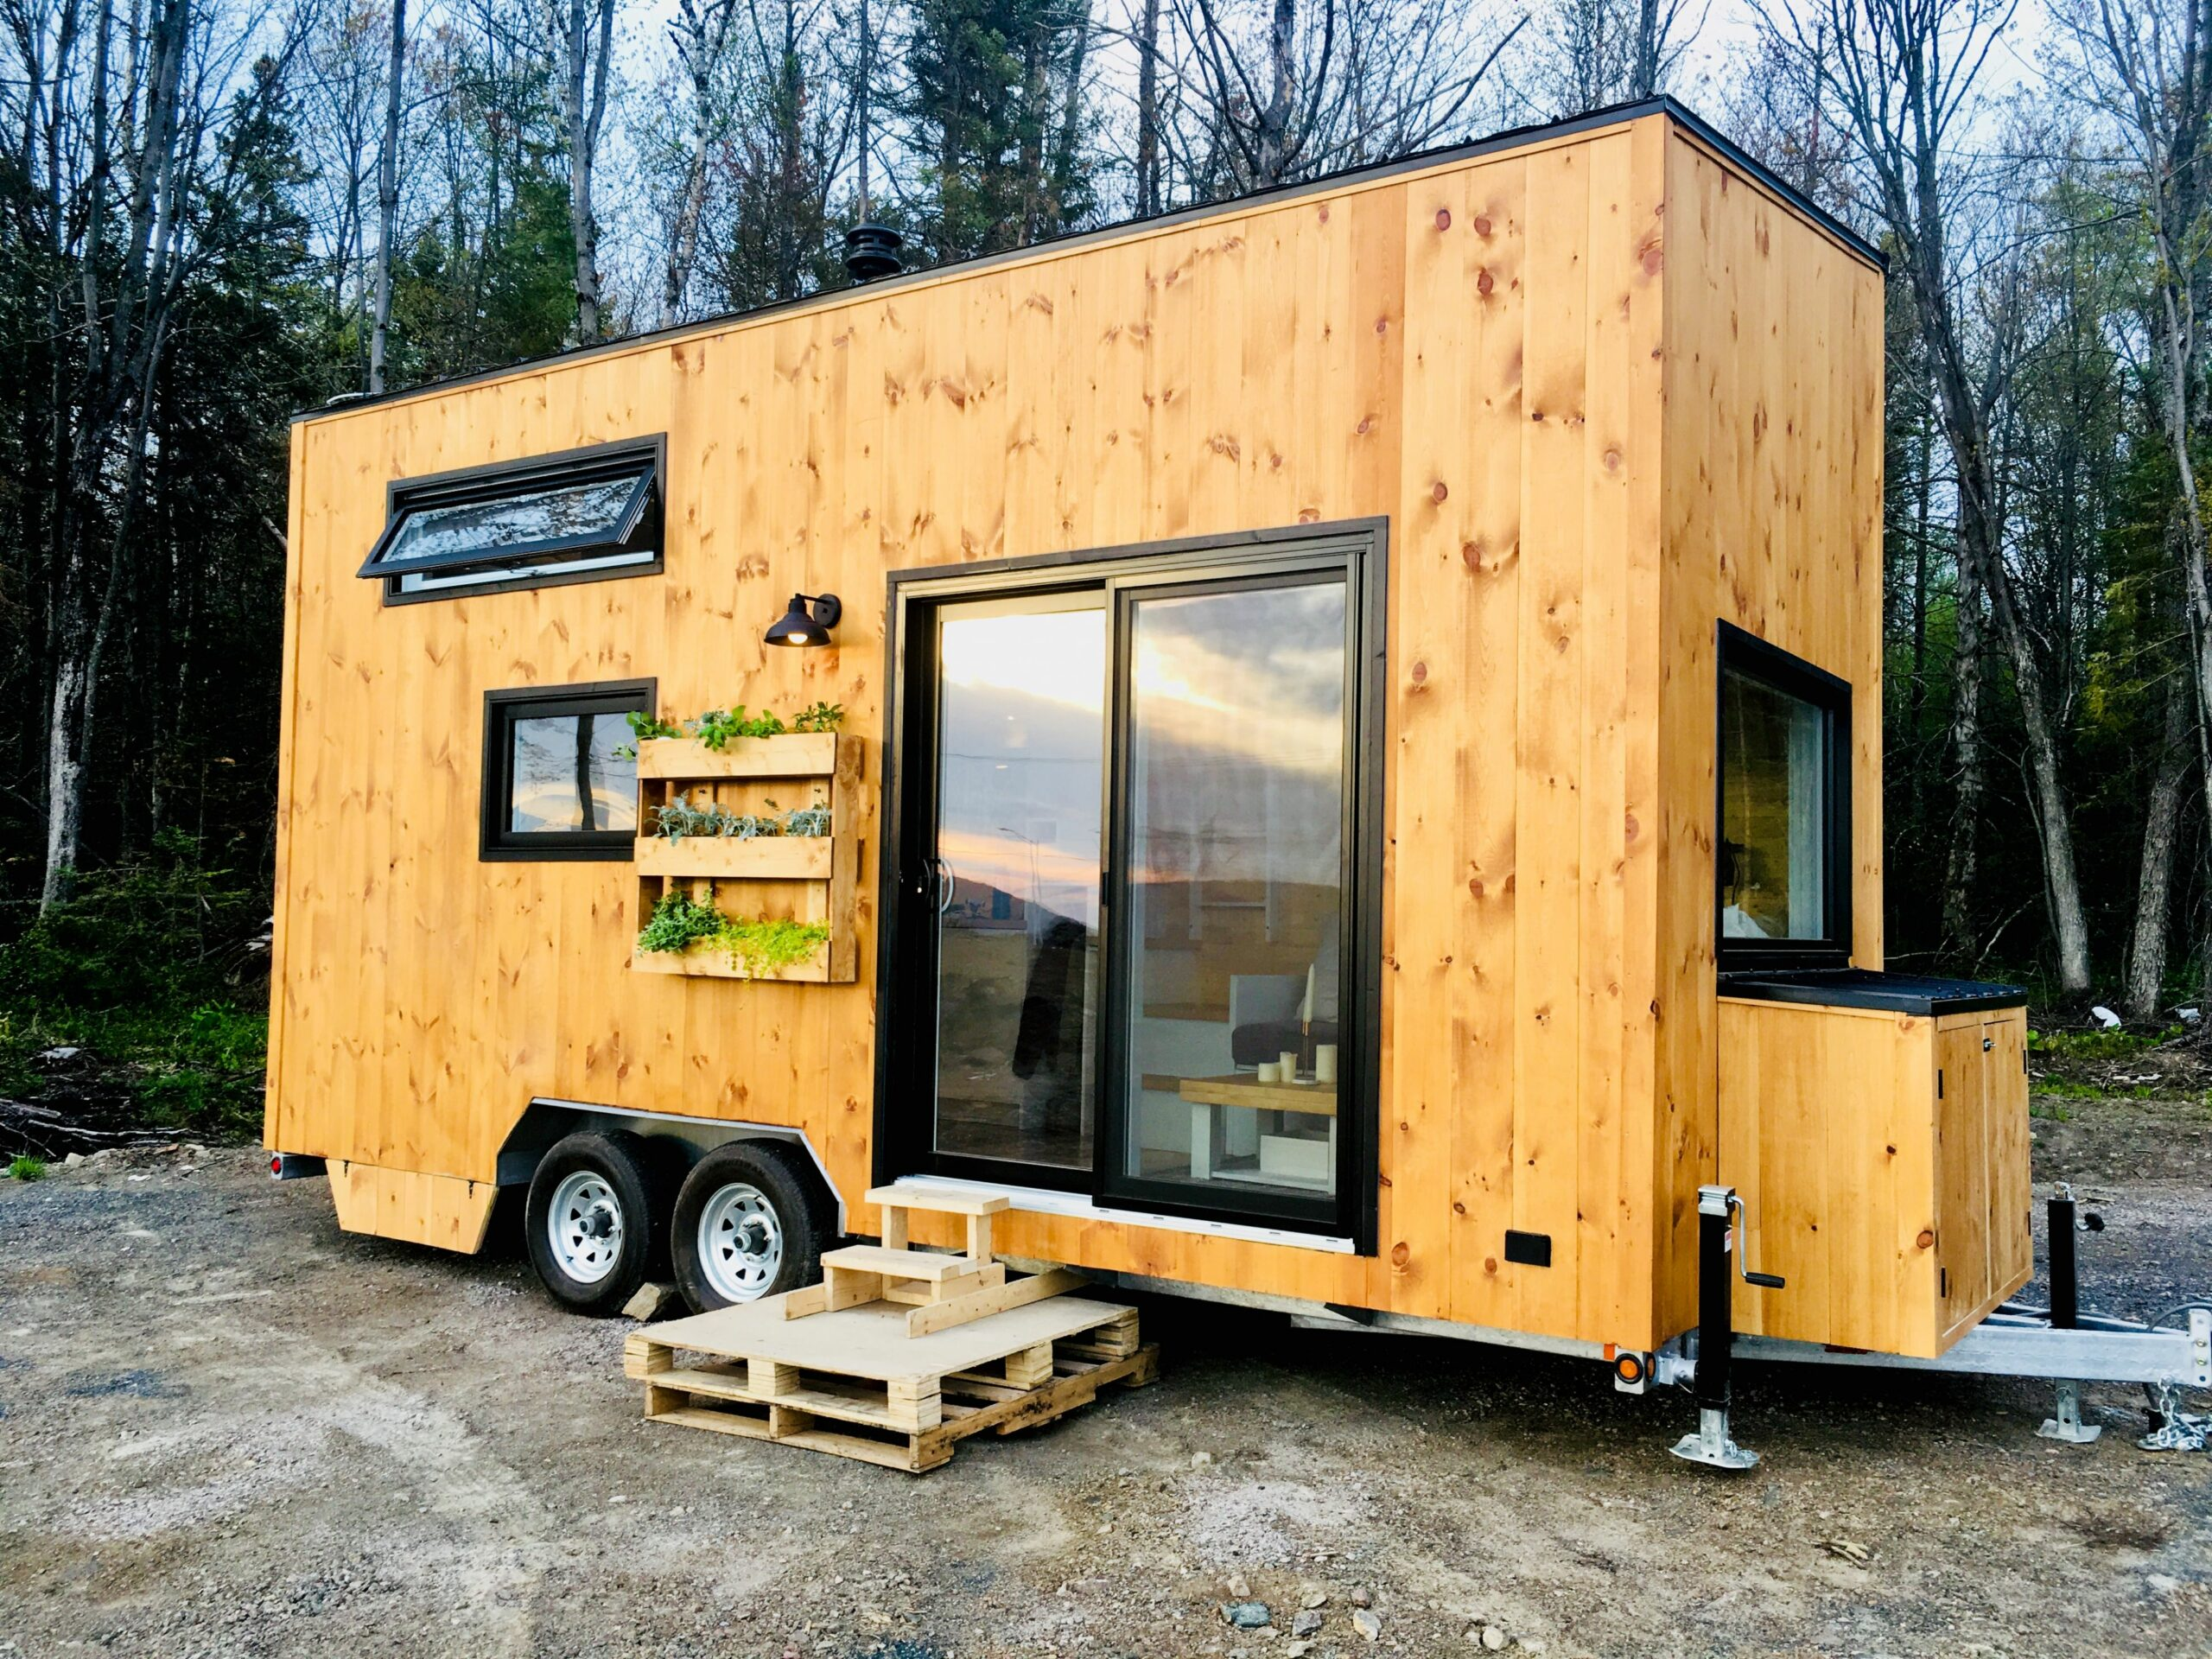 CABANE | Quebec City | Construction of tiny houses